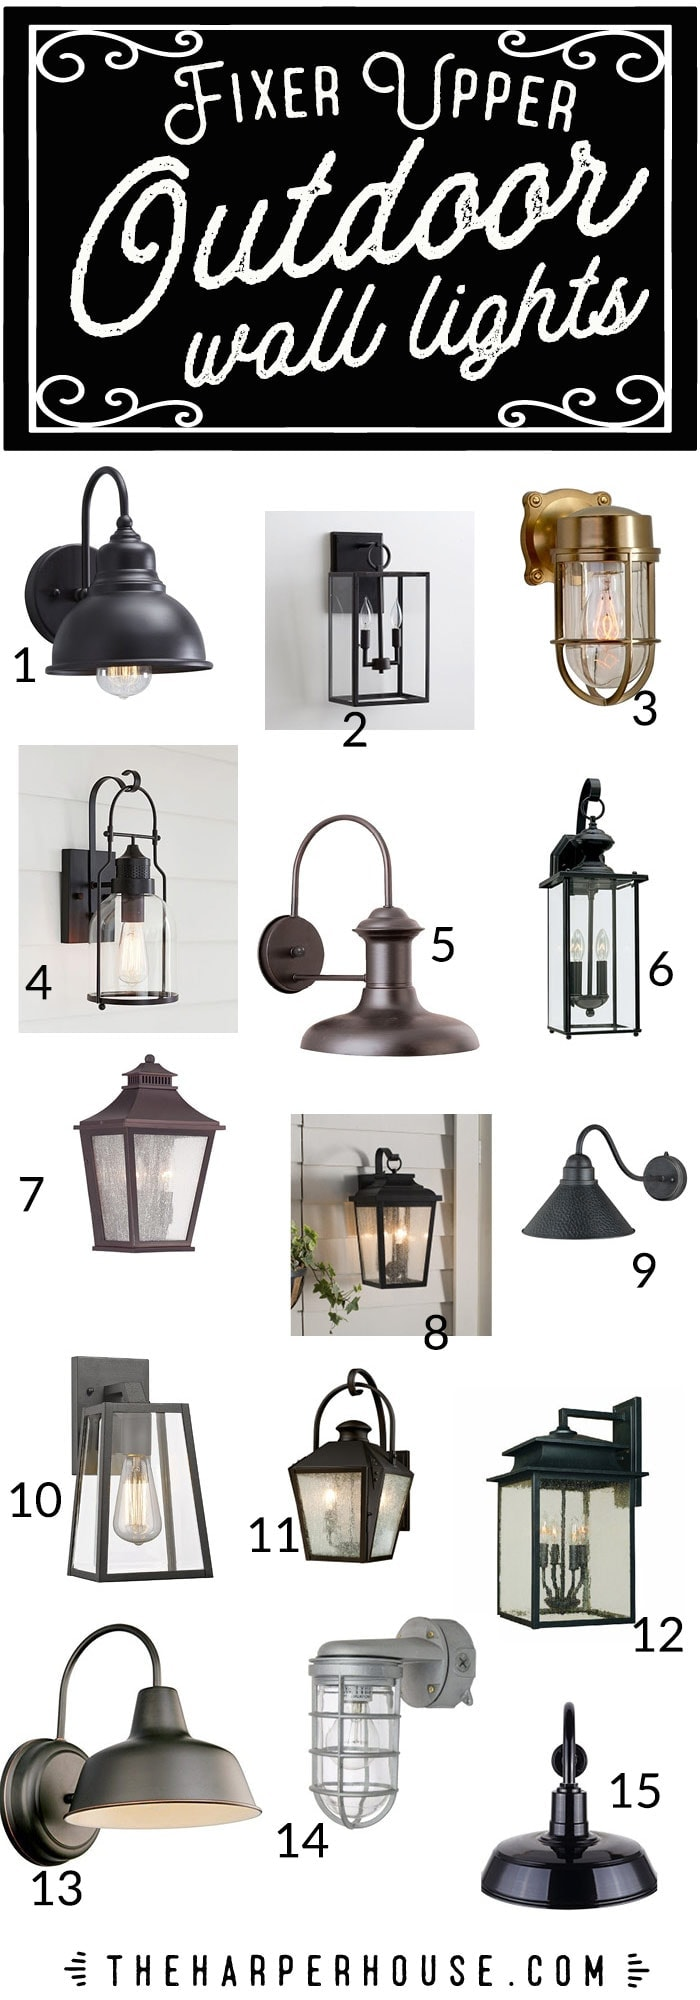 outdoor wall lights fixer upper style the harper house. Black Bedroom Furniture Sets. Home Design Ideas